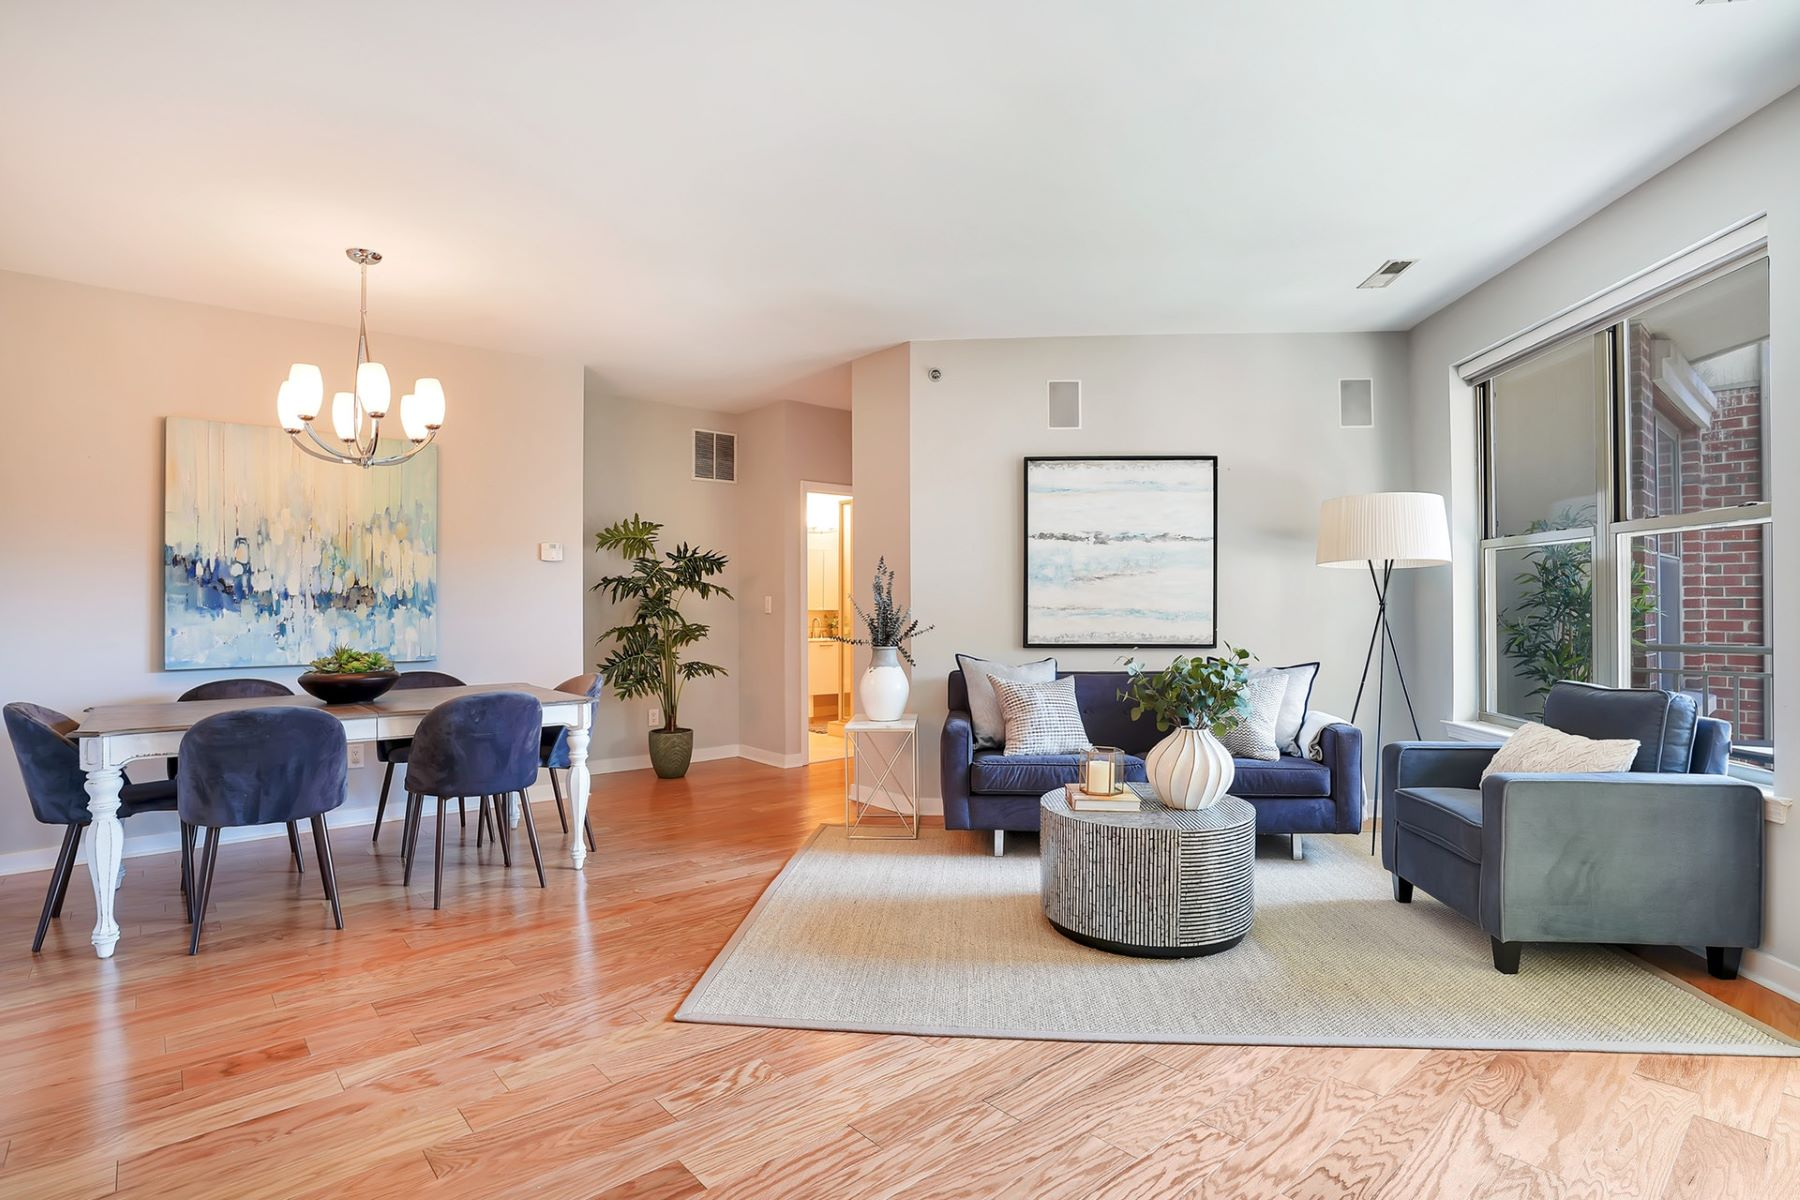 Condominiums for Sale at Welcome home to this premier waterfront community at Hudson Club! 24 Avenue at Port Imperial #419 West New York, New Jersey 07093 United States